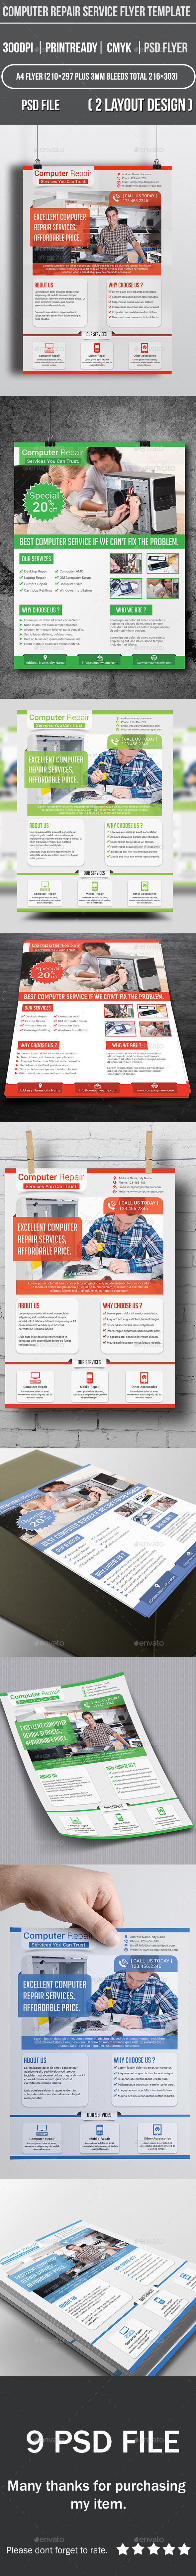 GraphicRiver Computer Repair Service Flyer Template 9541549